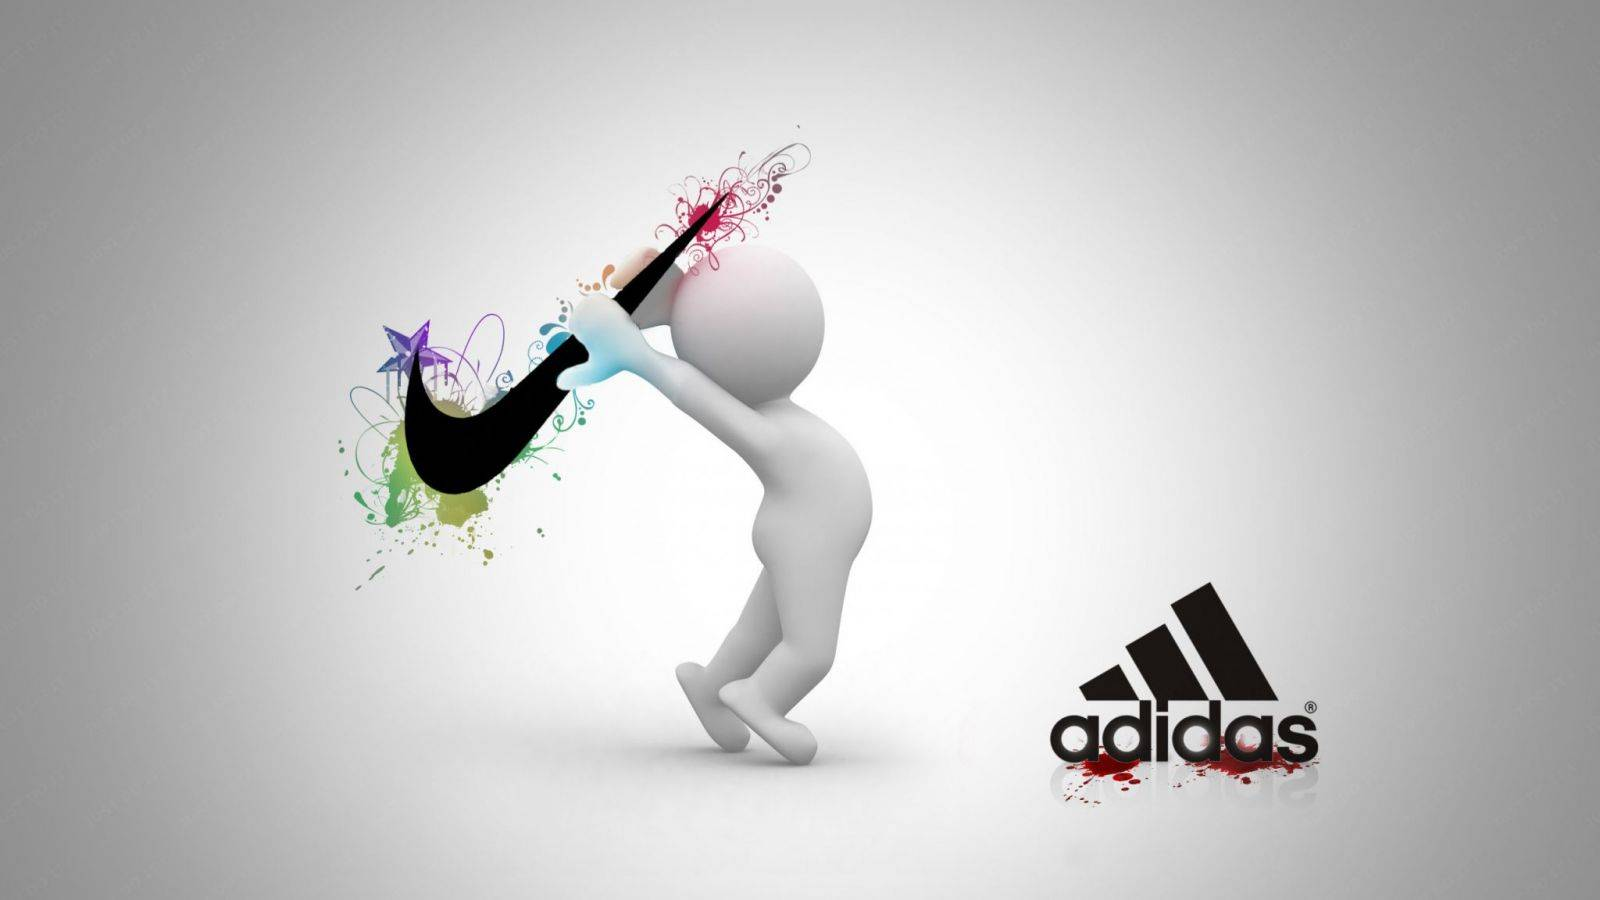 Cool Adidas Wallpapers 1600x900